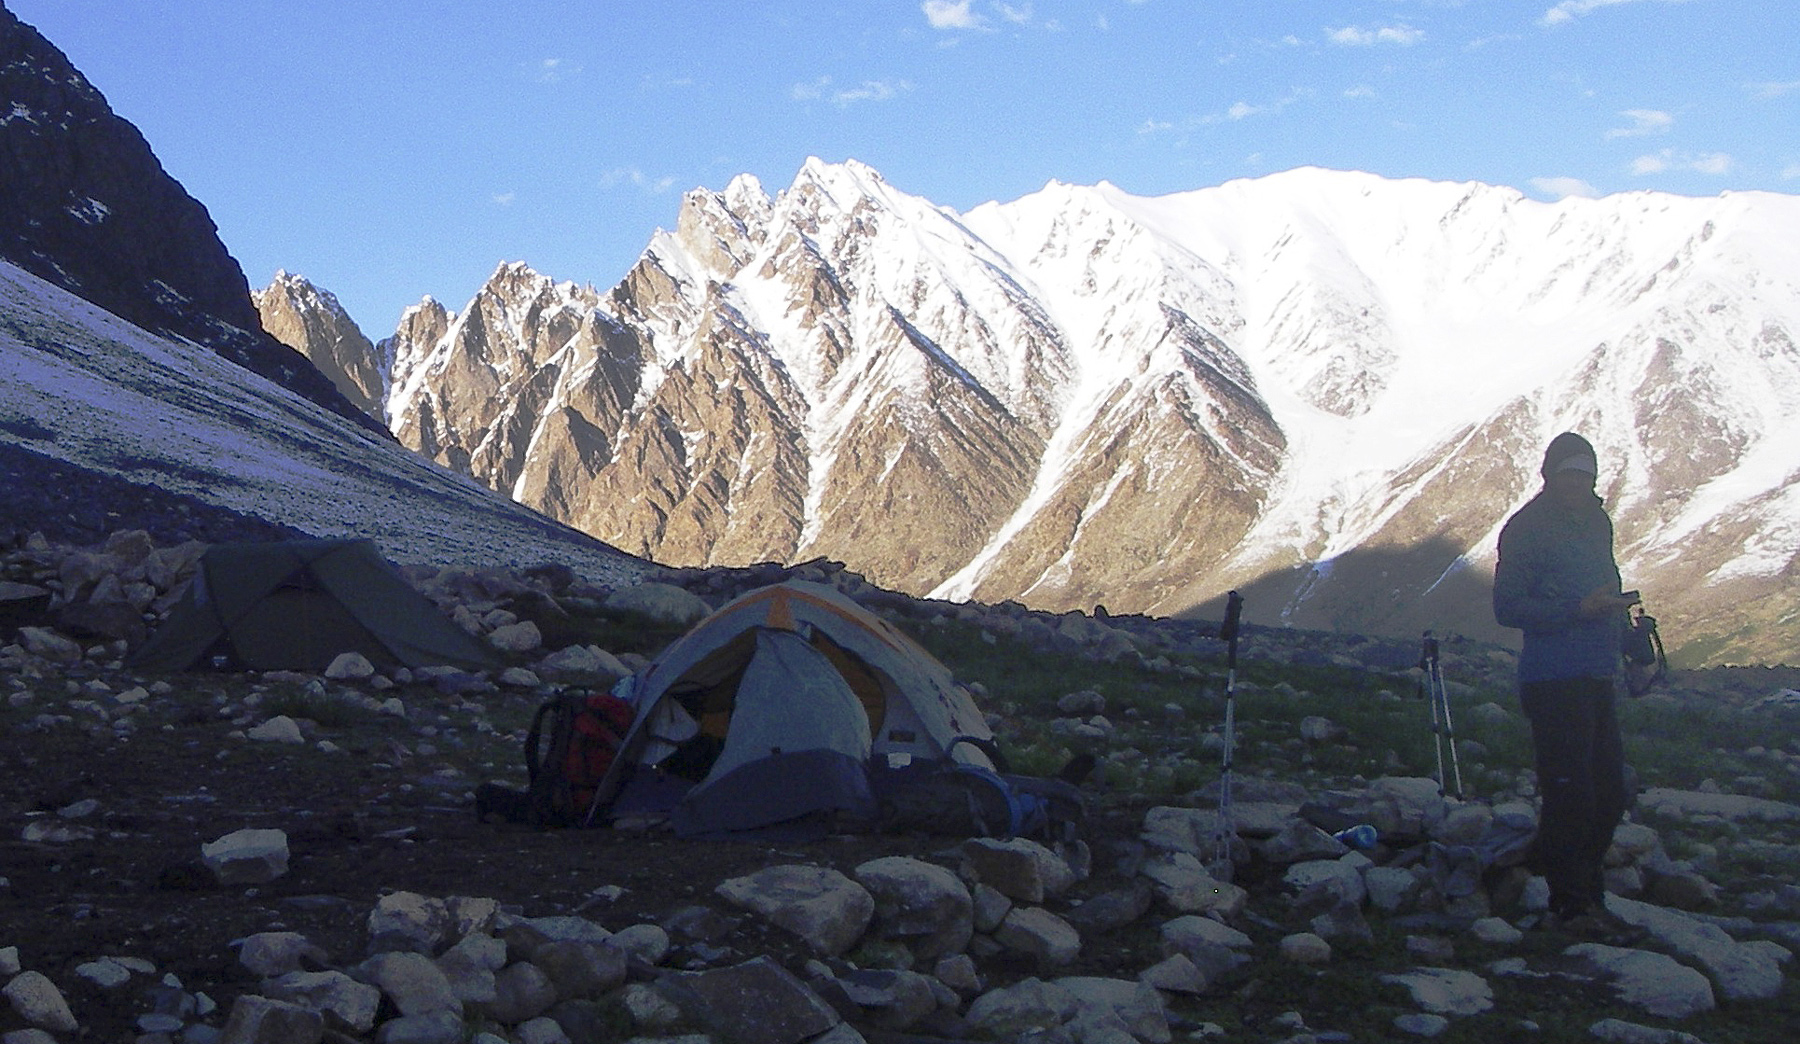 Koh-e-Khar from the vicinity of Uween-e-Sar to the south. The route of ascent followed the skyline ridge from right to left to reach the twin summits directly above the tent.